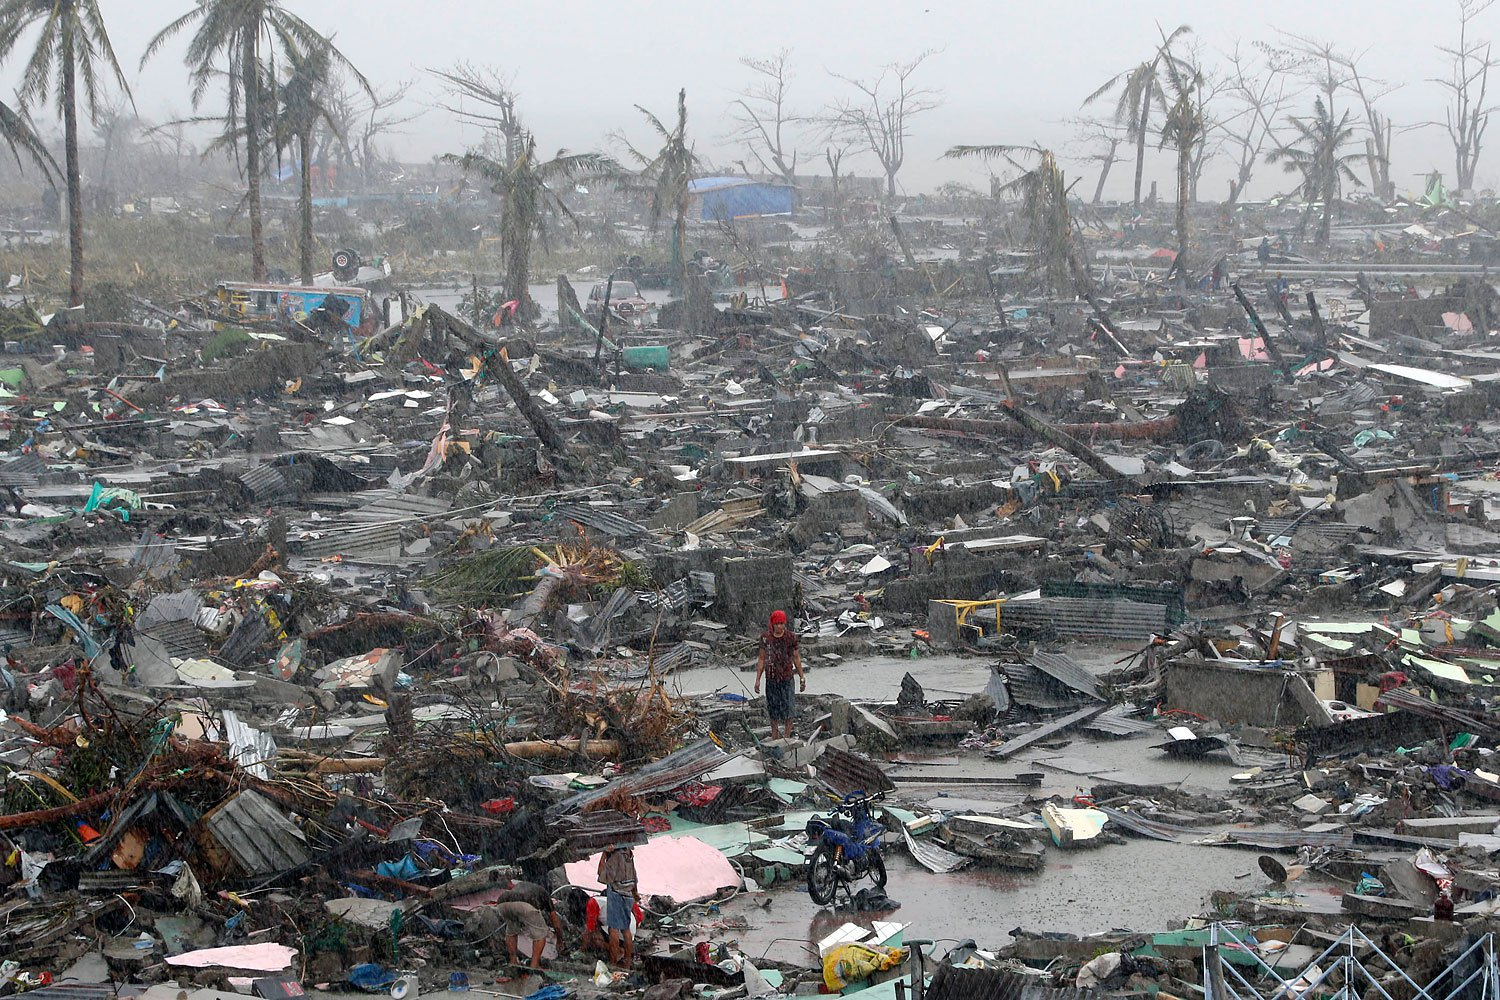 Survivors stand among debris and ruins of houses on Nov. 10, 2013, after Supertyphoon Haiyan battered the city of Tacloban, in central Philippines